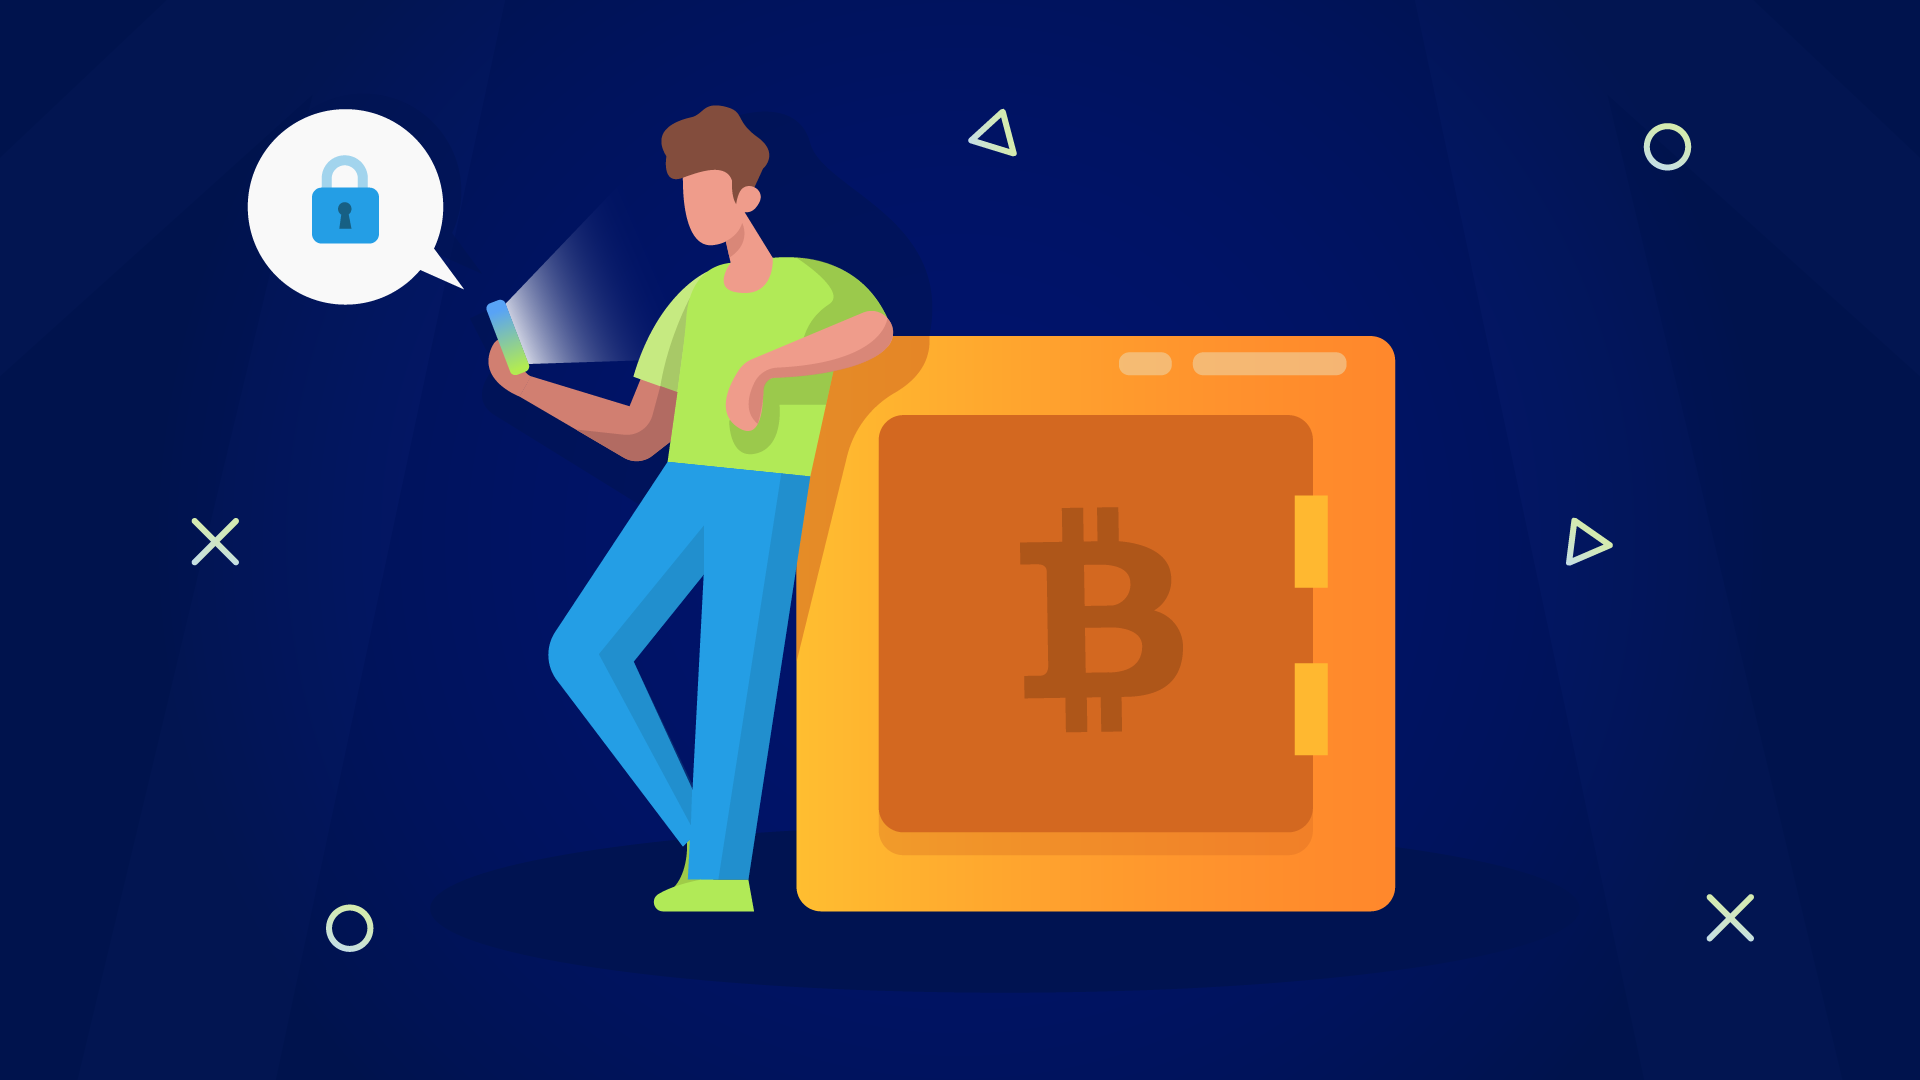 How to store Bitcoin safely?